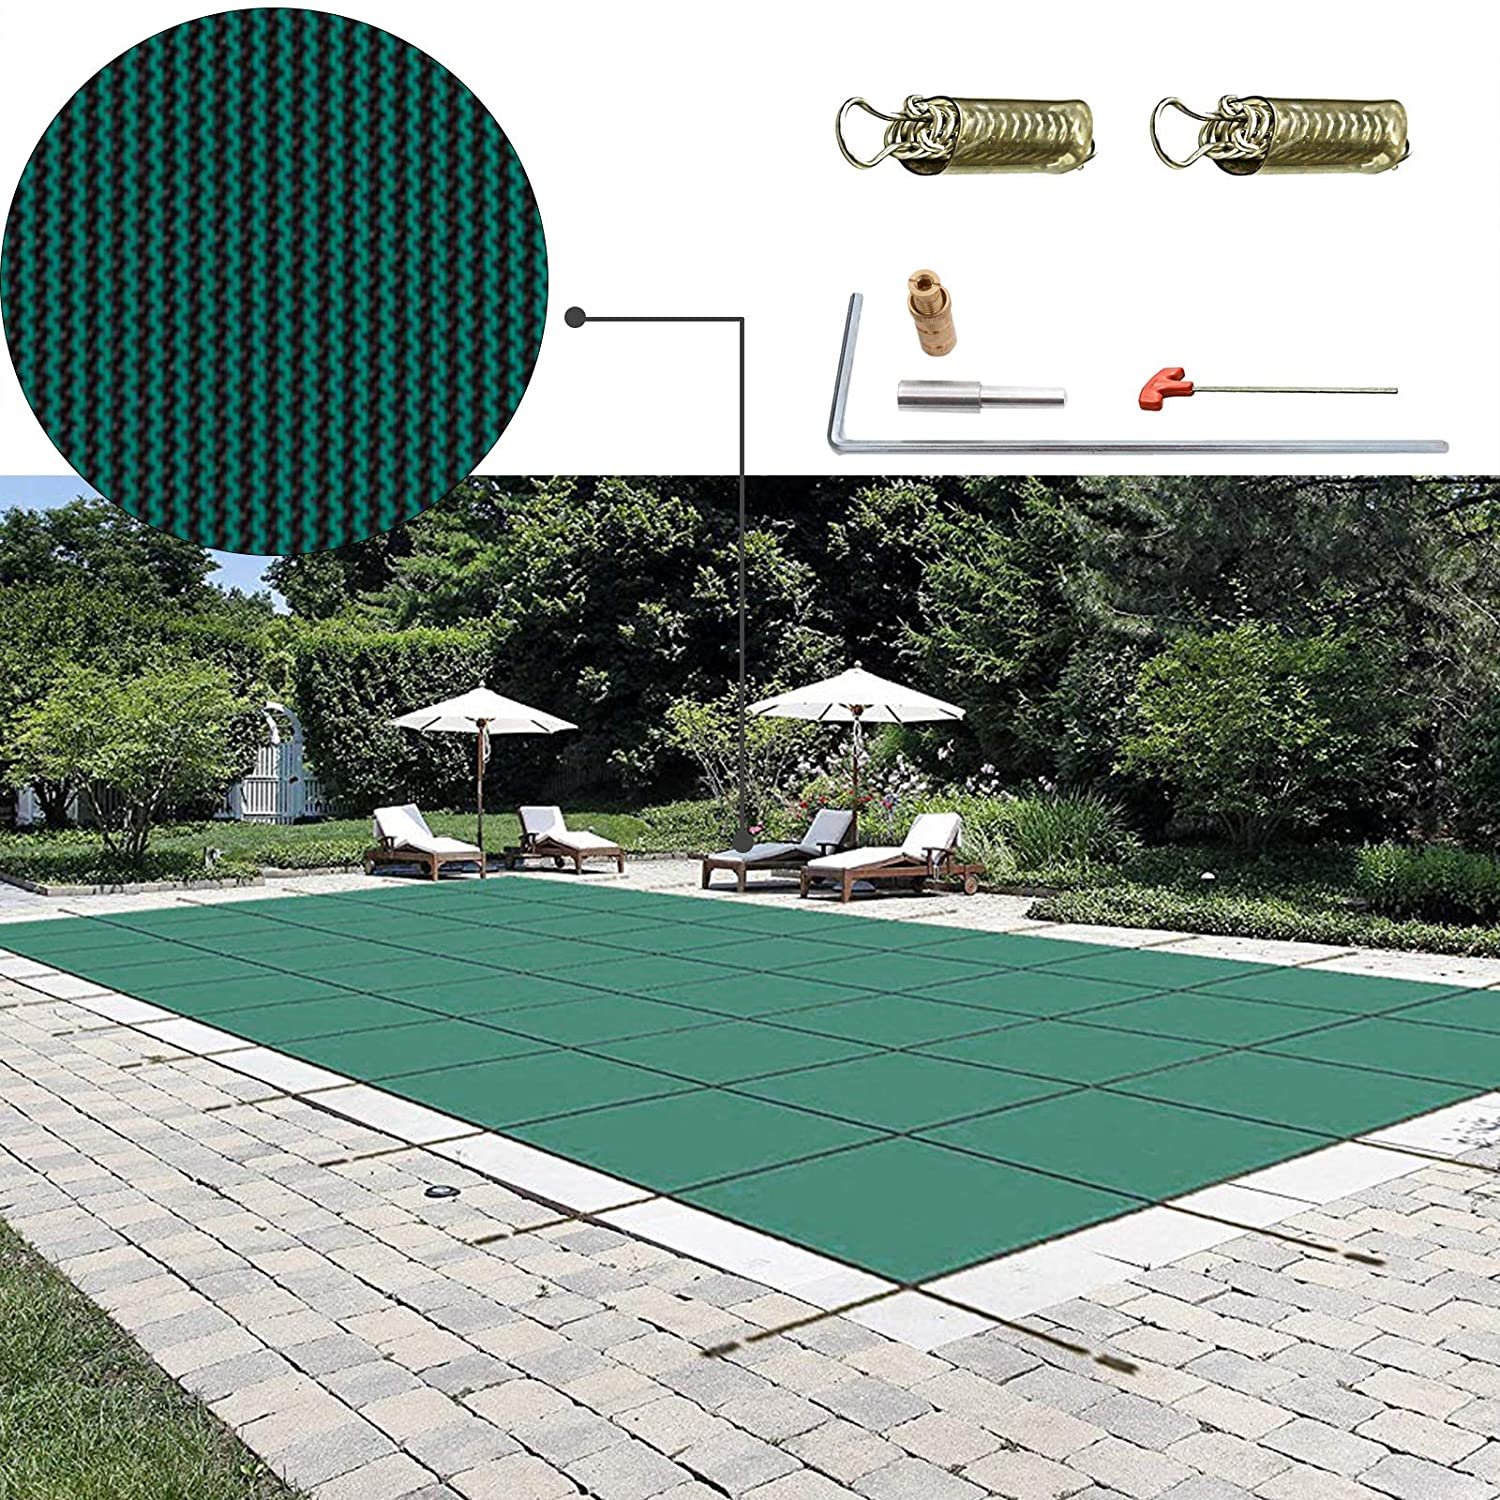 Happybuy Pool Safety Cover 14x26ft Rectangle Inground Safety Pool Cover  Green Mesh Solid Pool Safety Cover for Swimming Pool Winter Safety Cover